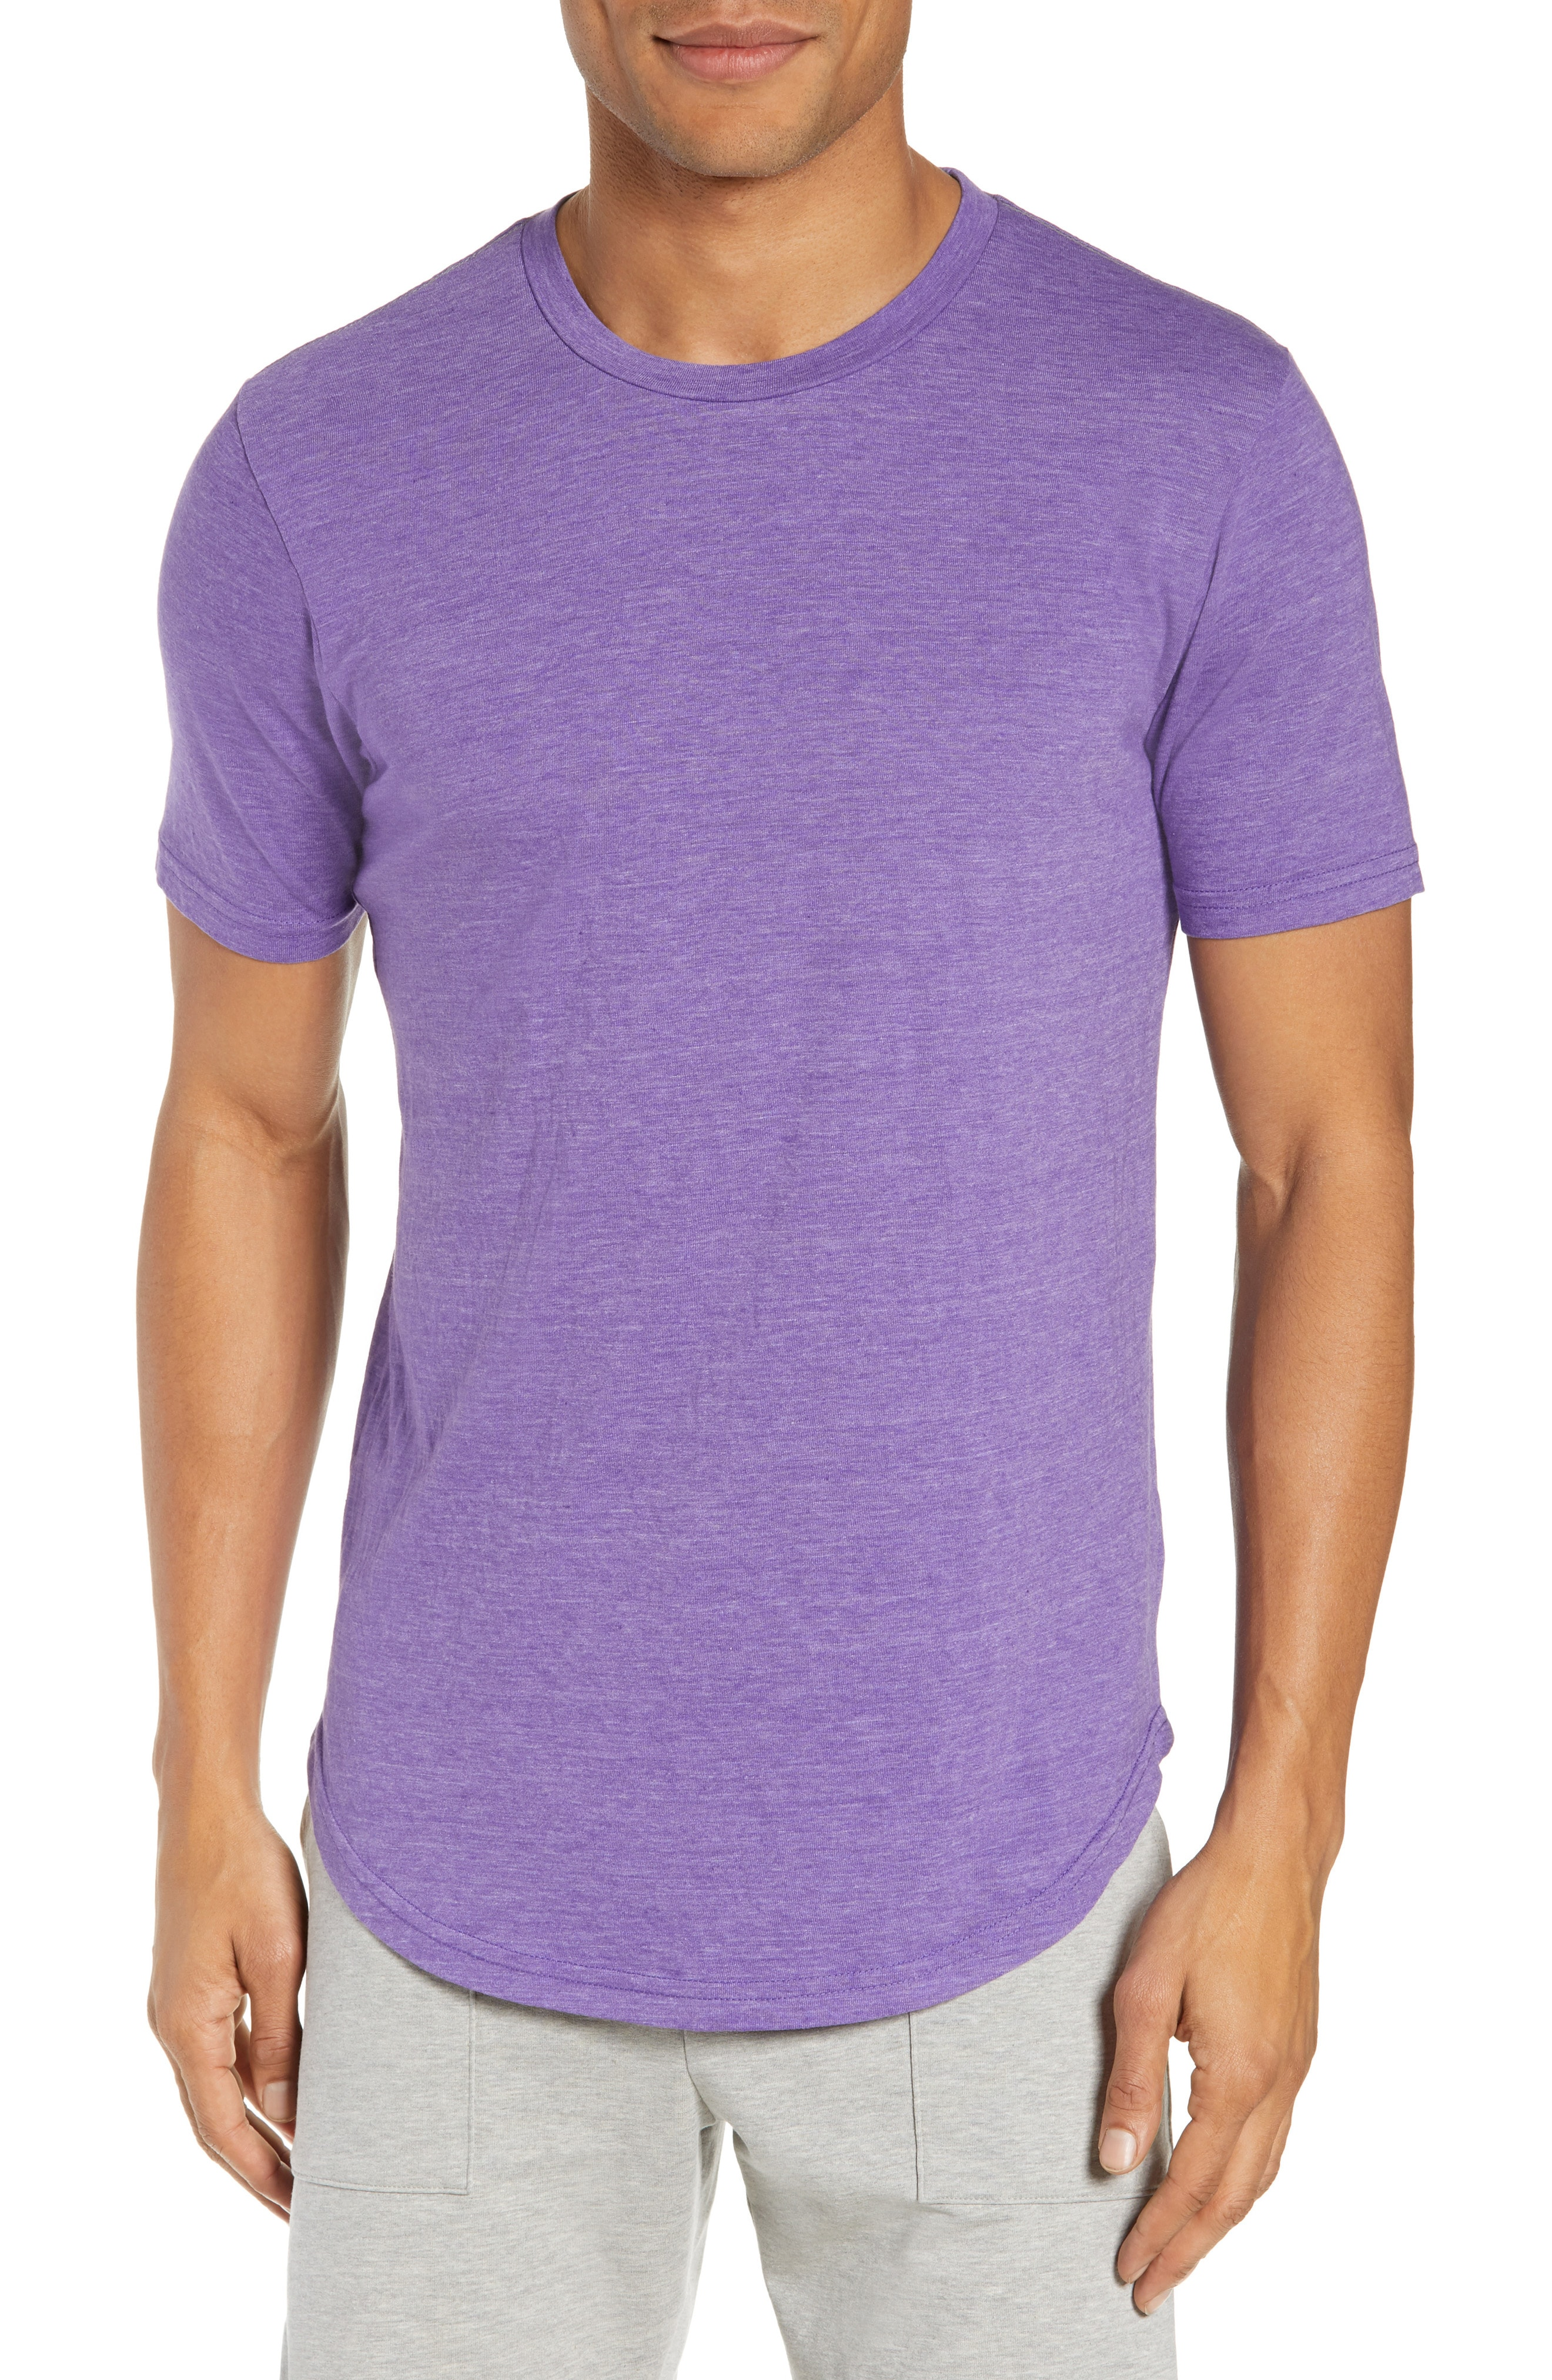 Men's Purple T-Shirts & Graphic Tees | Nordstrom